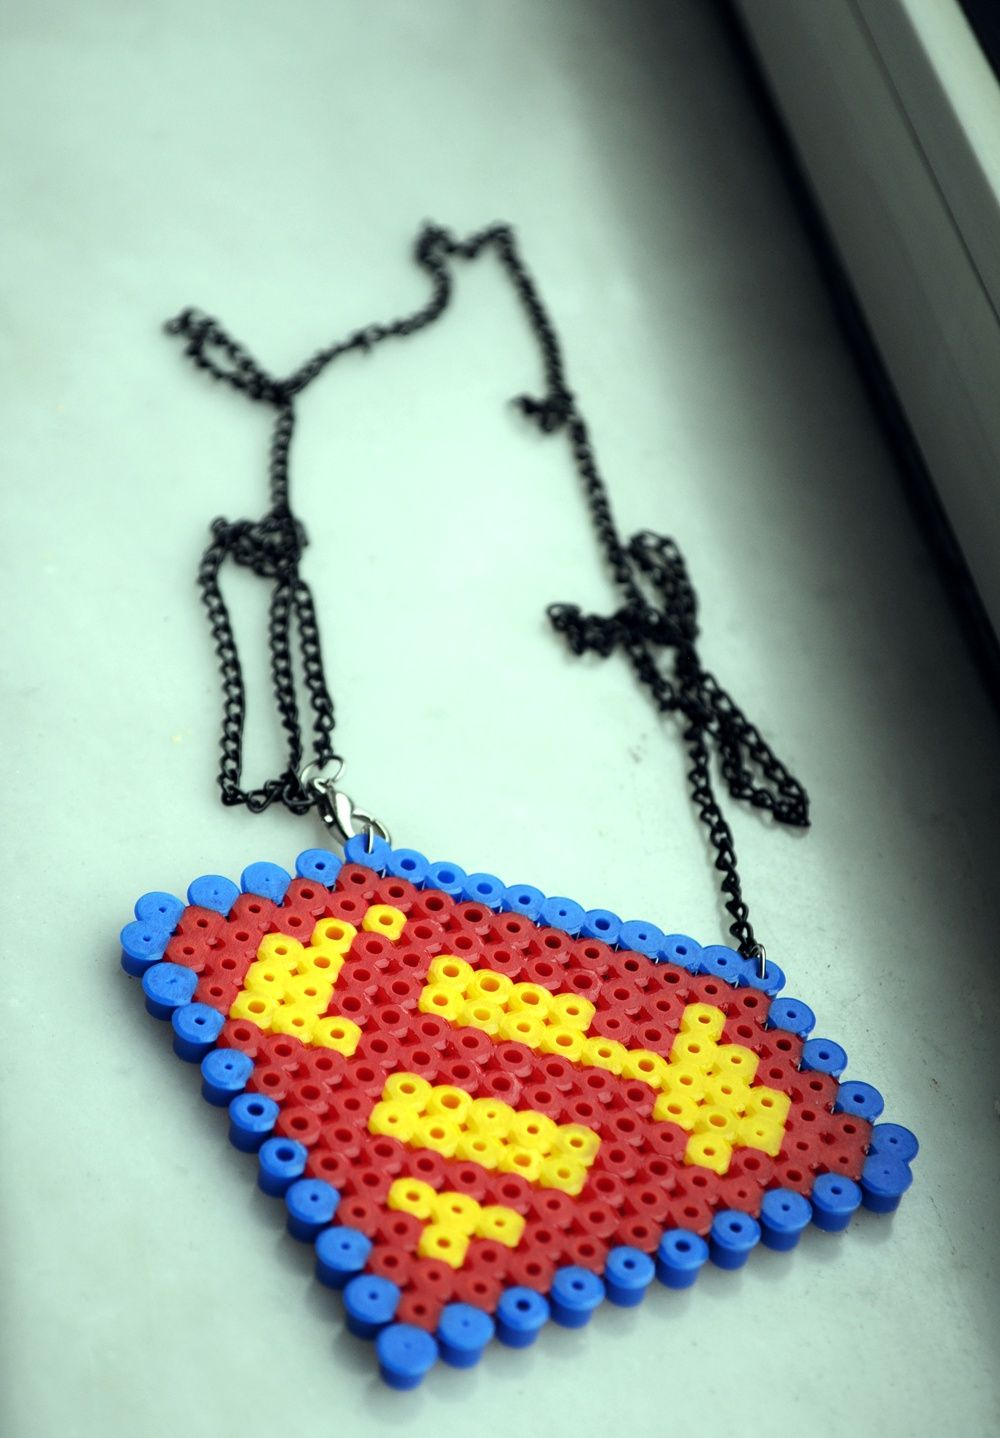 Omg. Don't remember what this craft was called but I used to love making these things where u iron all the beads together